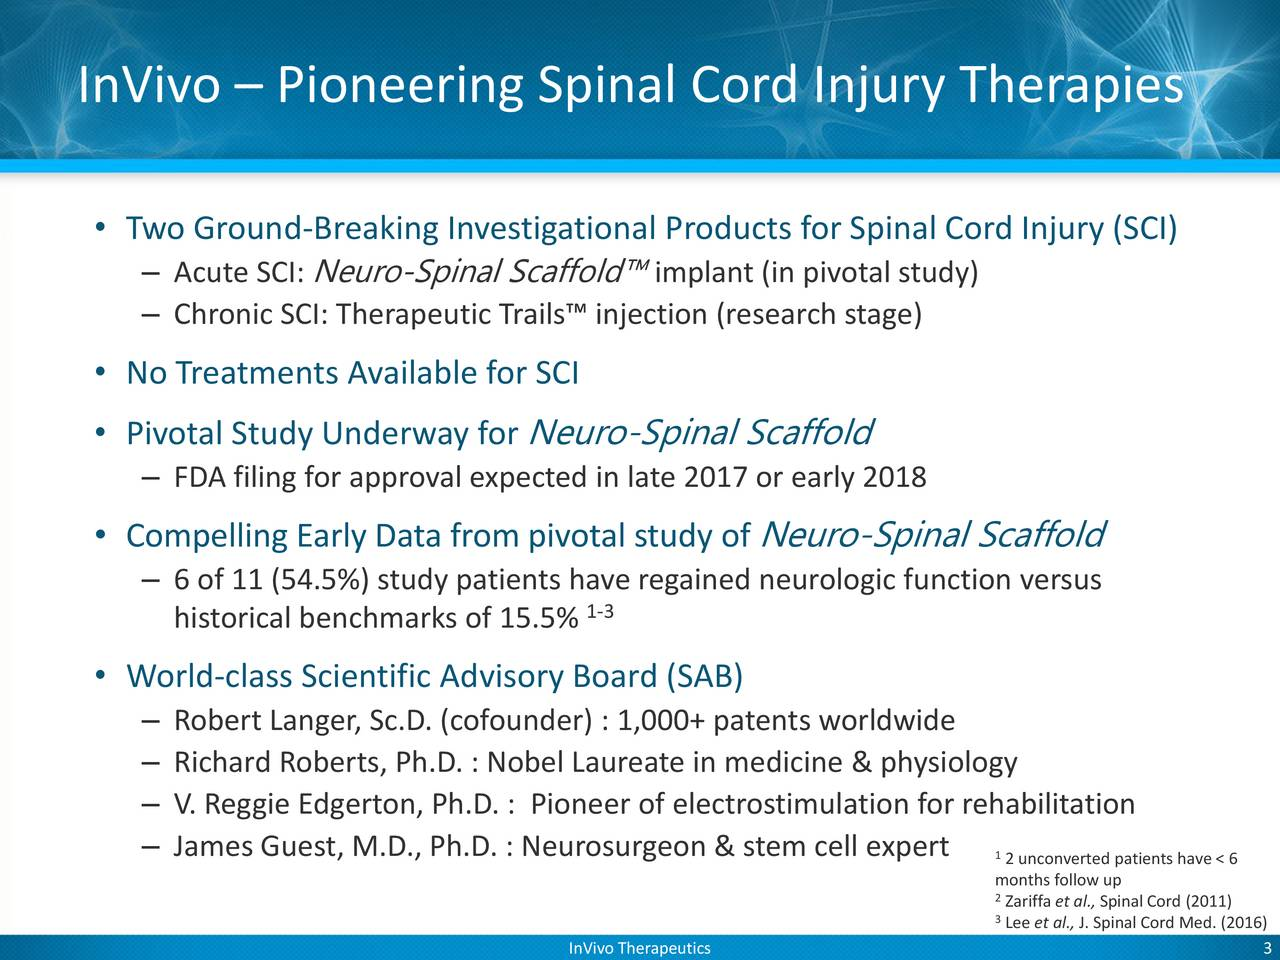 Two Ground-Breaking Investigational Products for Spinal Cord Injury (SCI) Acute SCI: Neuro-Spinal Scaffold implant (in pivotal study) Chronic SCI: Therapeutic Trails injection (research stage) No Treatments Available for SCI Pivotal Study Underway for Neuro-Spinal Scaffold FDA filing for approval expected in late 2017 or early 2018 Compelling Early Data from pivotal study of Neuro-Spinal Scaffold 6 of 11 (54.5%) study patients have regained neurologic function versus historical benchmarks of 15.5% 1-3 World-class Scientific Advisory Board (SAB) Robert Langer, Sc.D. (cofounder) : 1,000+ patents worldwide Richard Roberts, Ph.D. : Nobel Laureate in medicine & physiology V. Reggie Edgerton, Ph.D. : Pioneer of electrostimulation for rehabilitation James Guest, M.D., Ph.D. : Neurosurgeon & stem cell expert 1 months follow upatients have < 6 2Zariffa et al., Spinal Cord (2011) 3Lee et al., J. Spinal Cord Med. (2016)